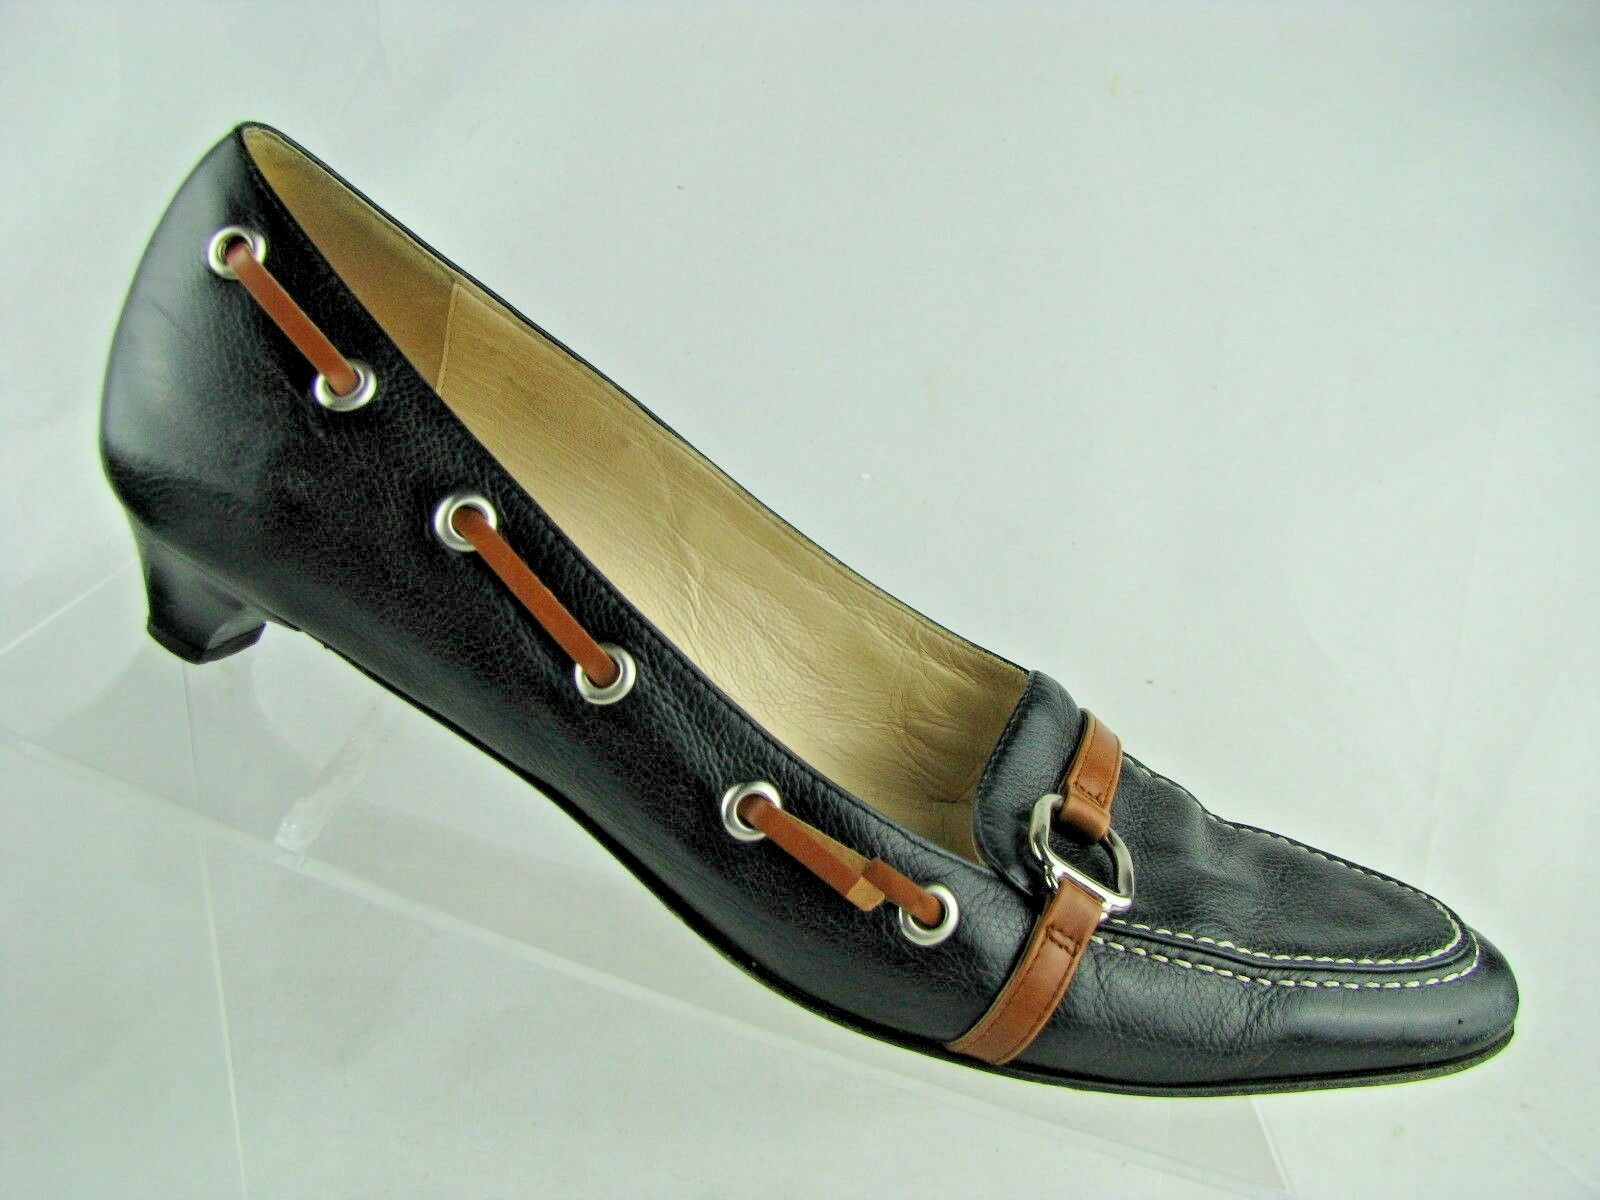 Cole Haan Womens Slip On Loafers Black British Tan Sz 8.5 B Crafted In